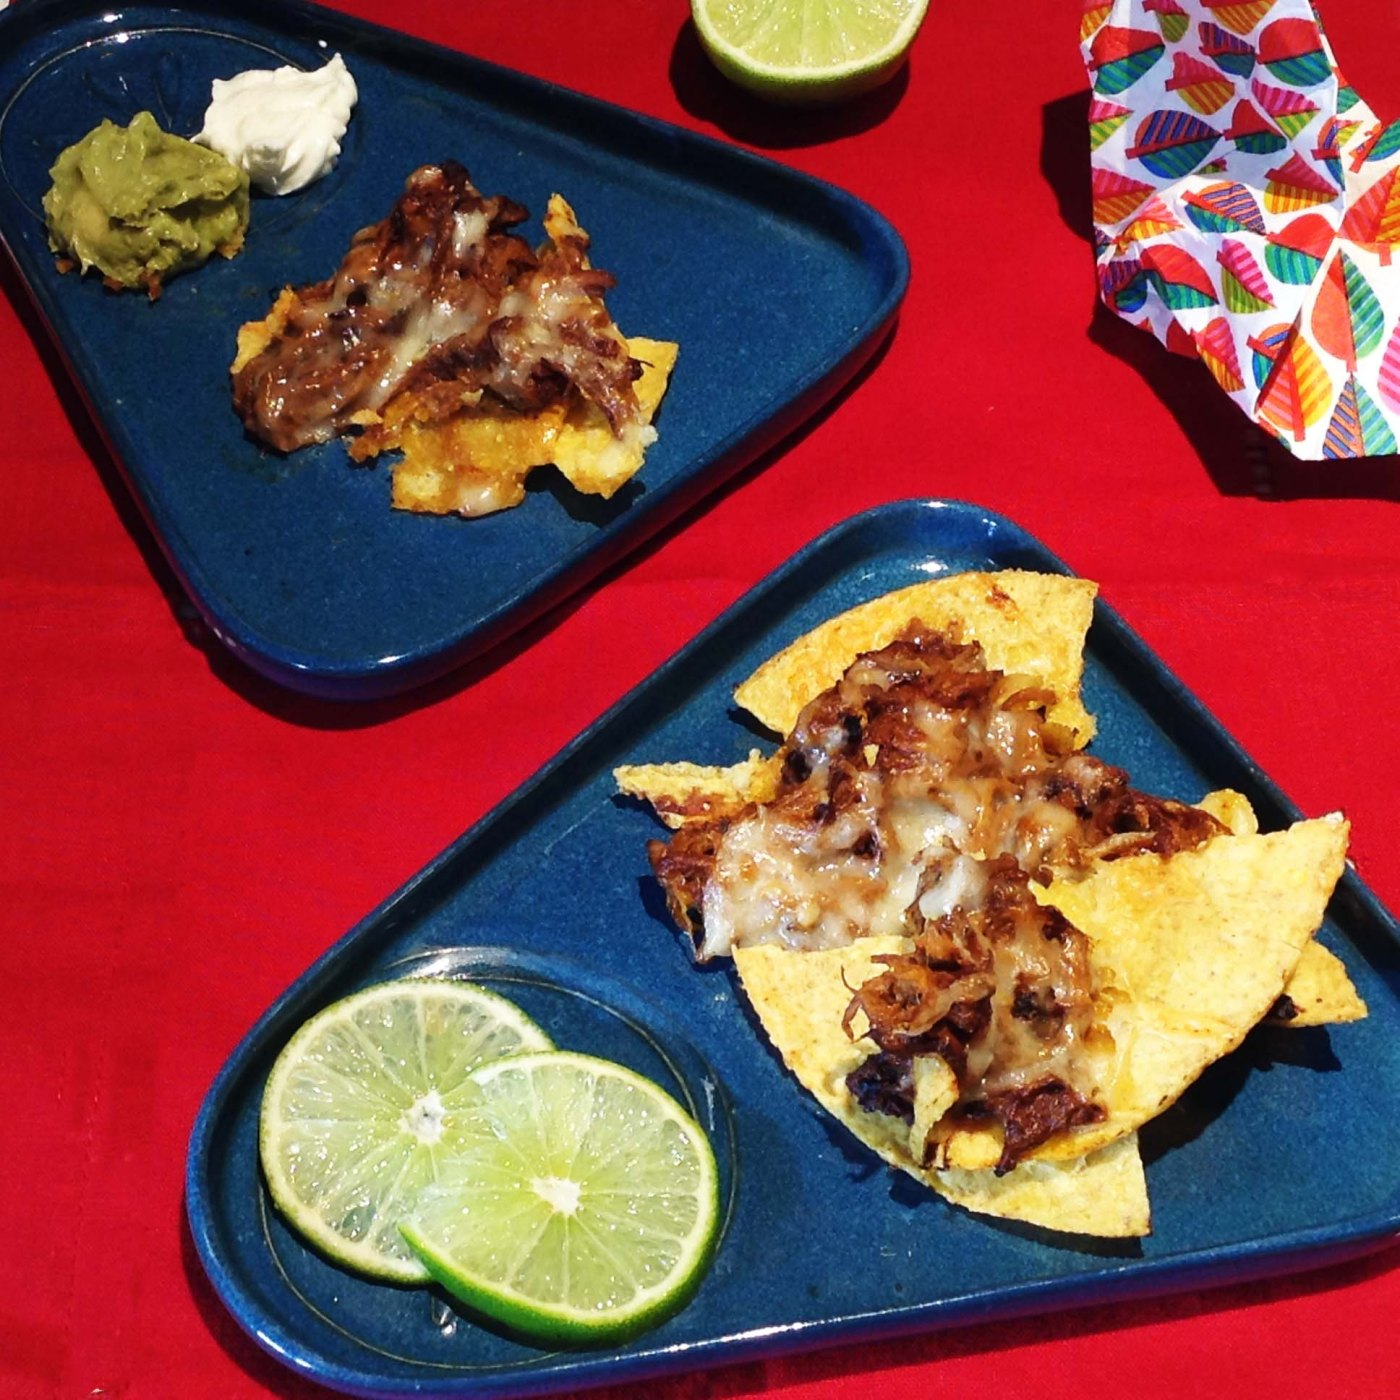 pulled-pork-nachos-with-limes